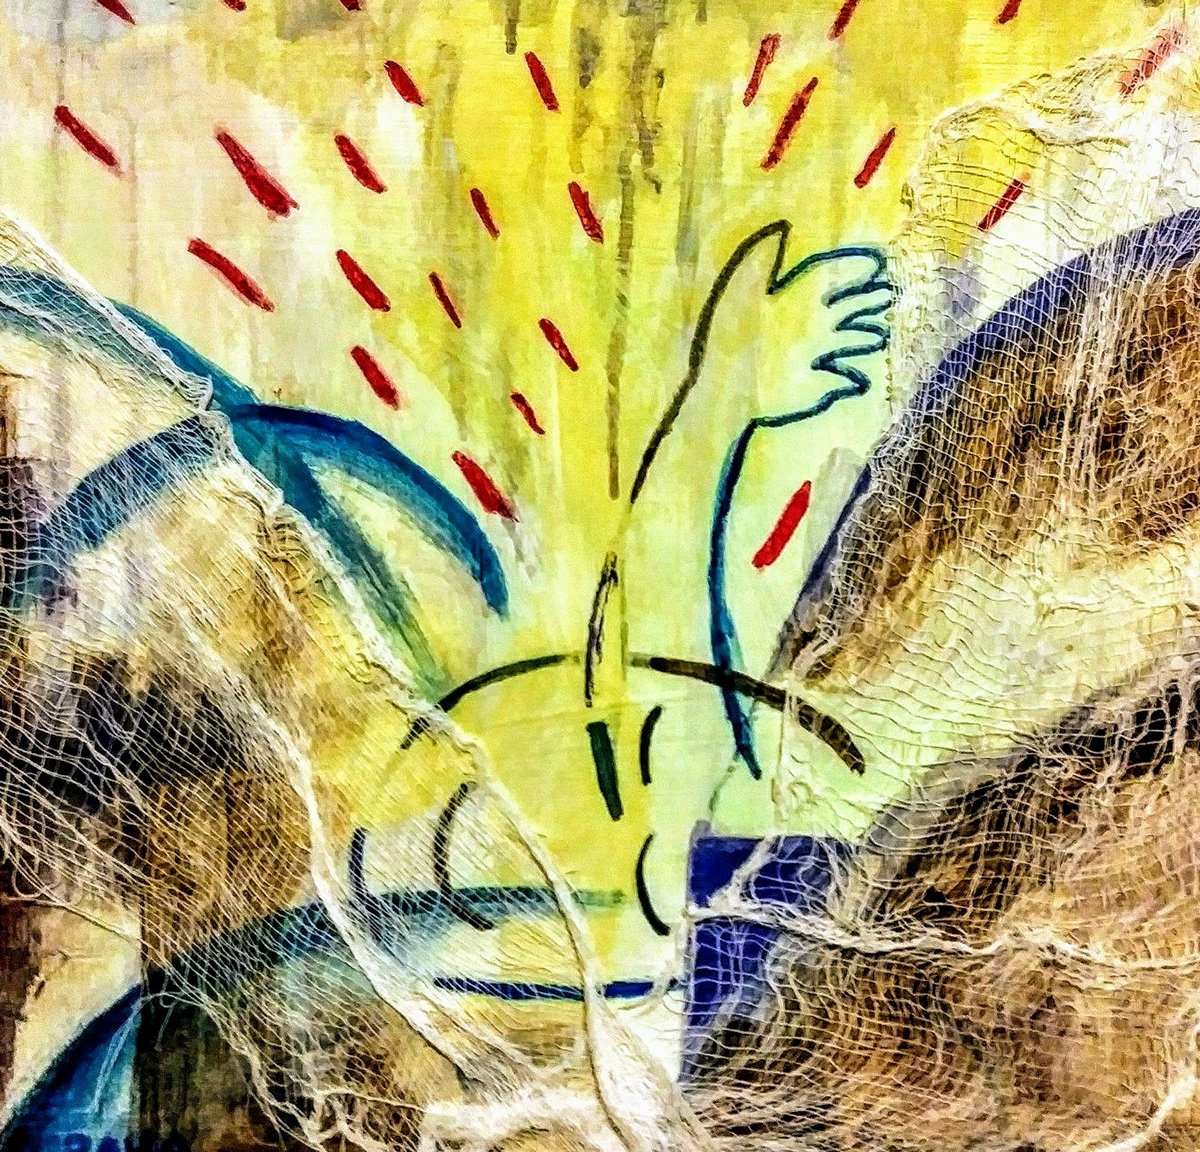 yukio kevin iraha's abstract illustration using mixed media about fight cancer.